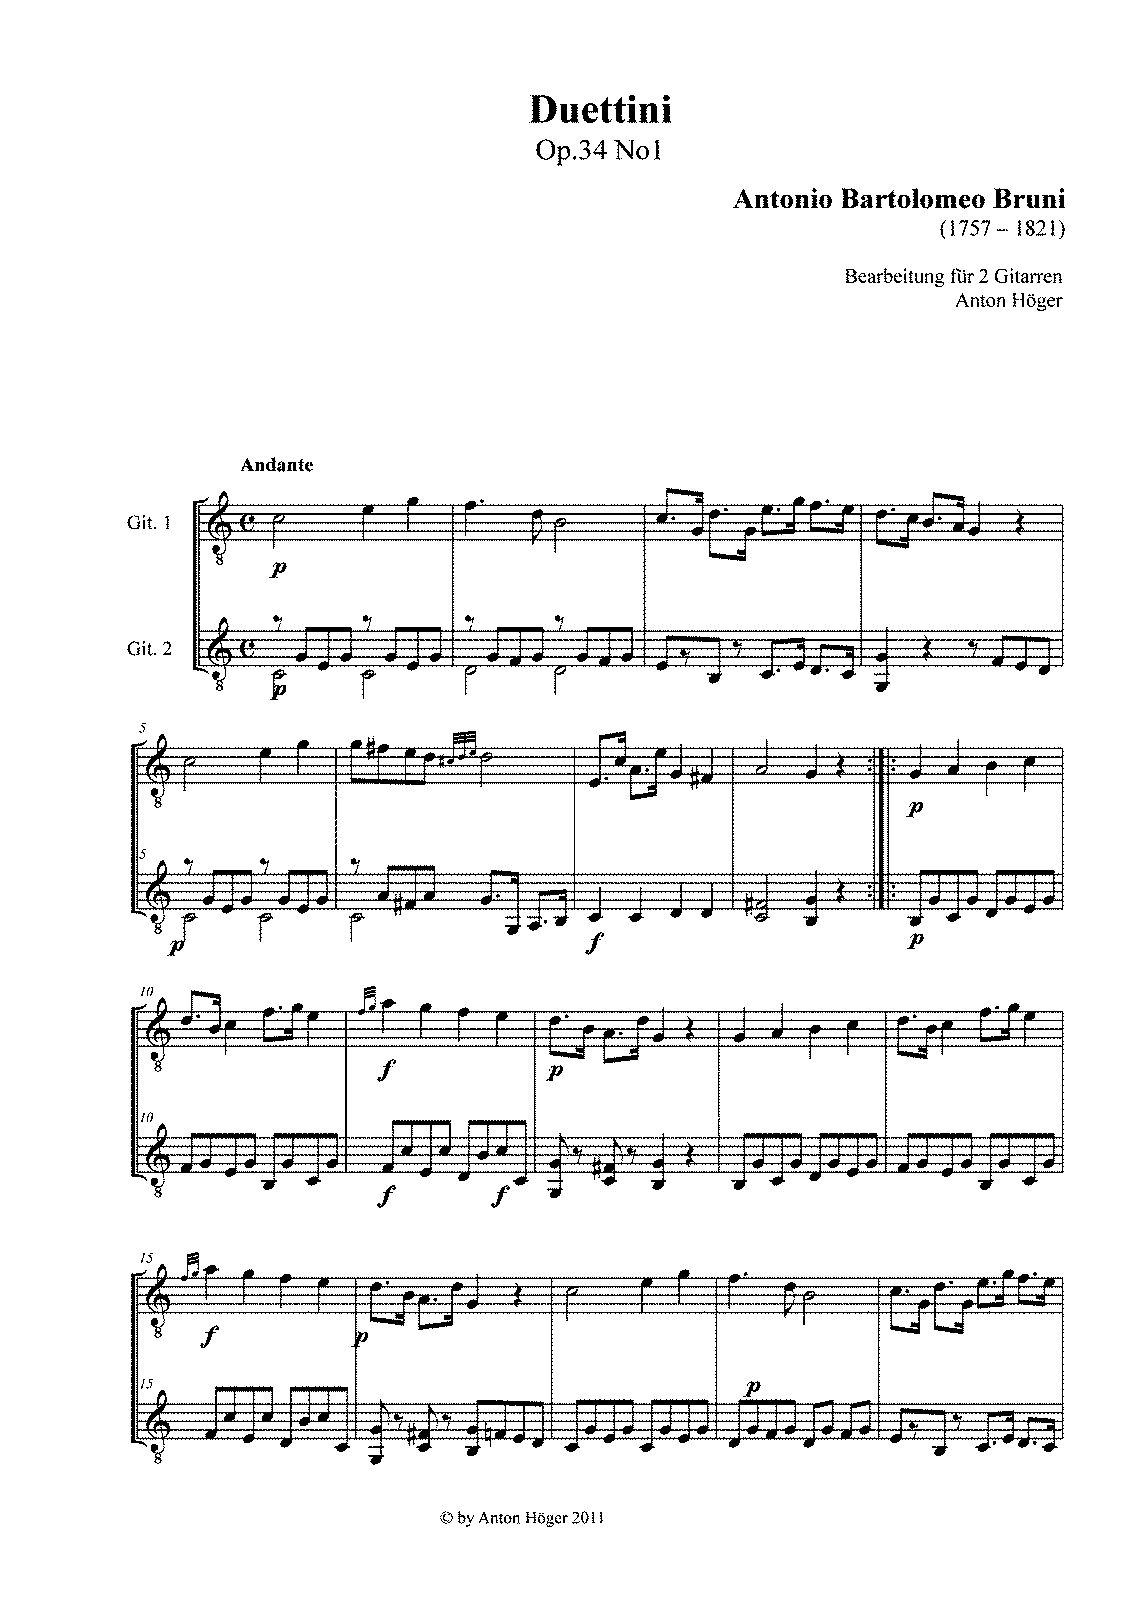 PMLP122884-Bruni, A.B. - Duettini Op.34 No1.pdf